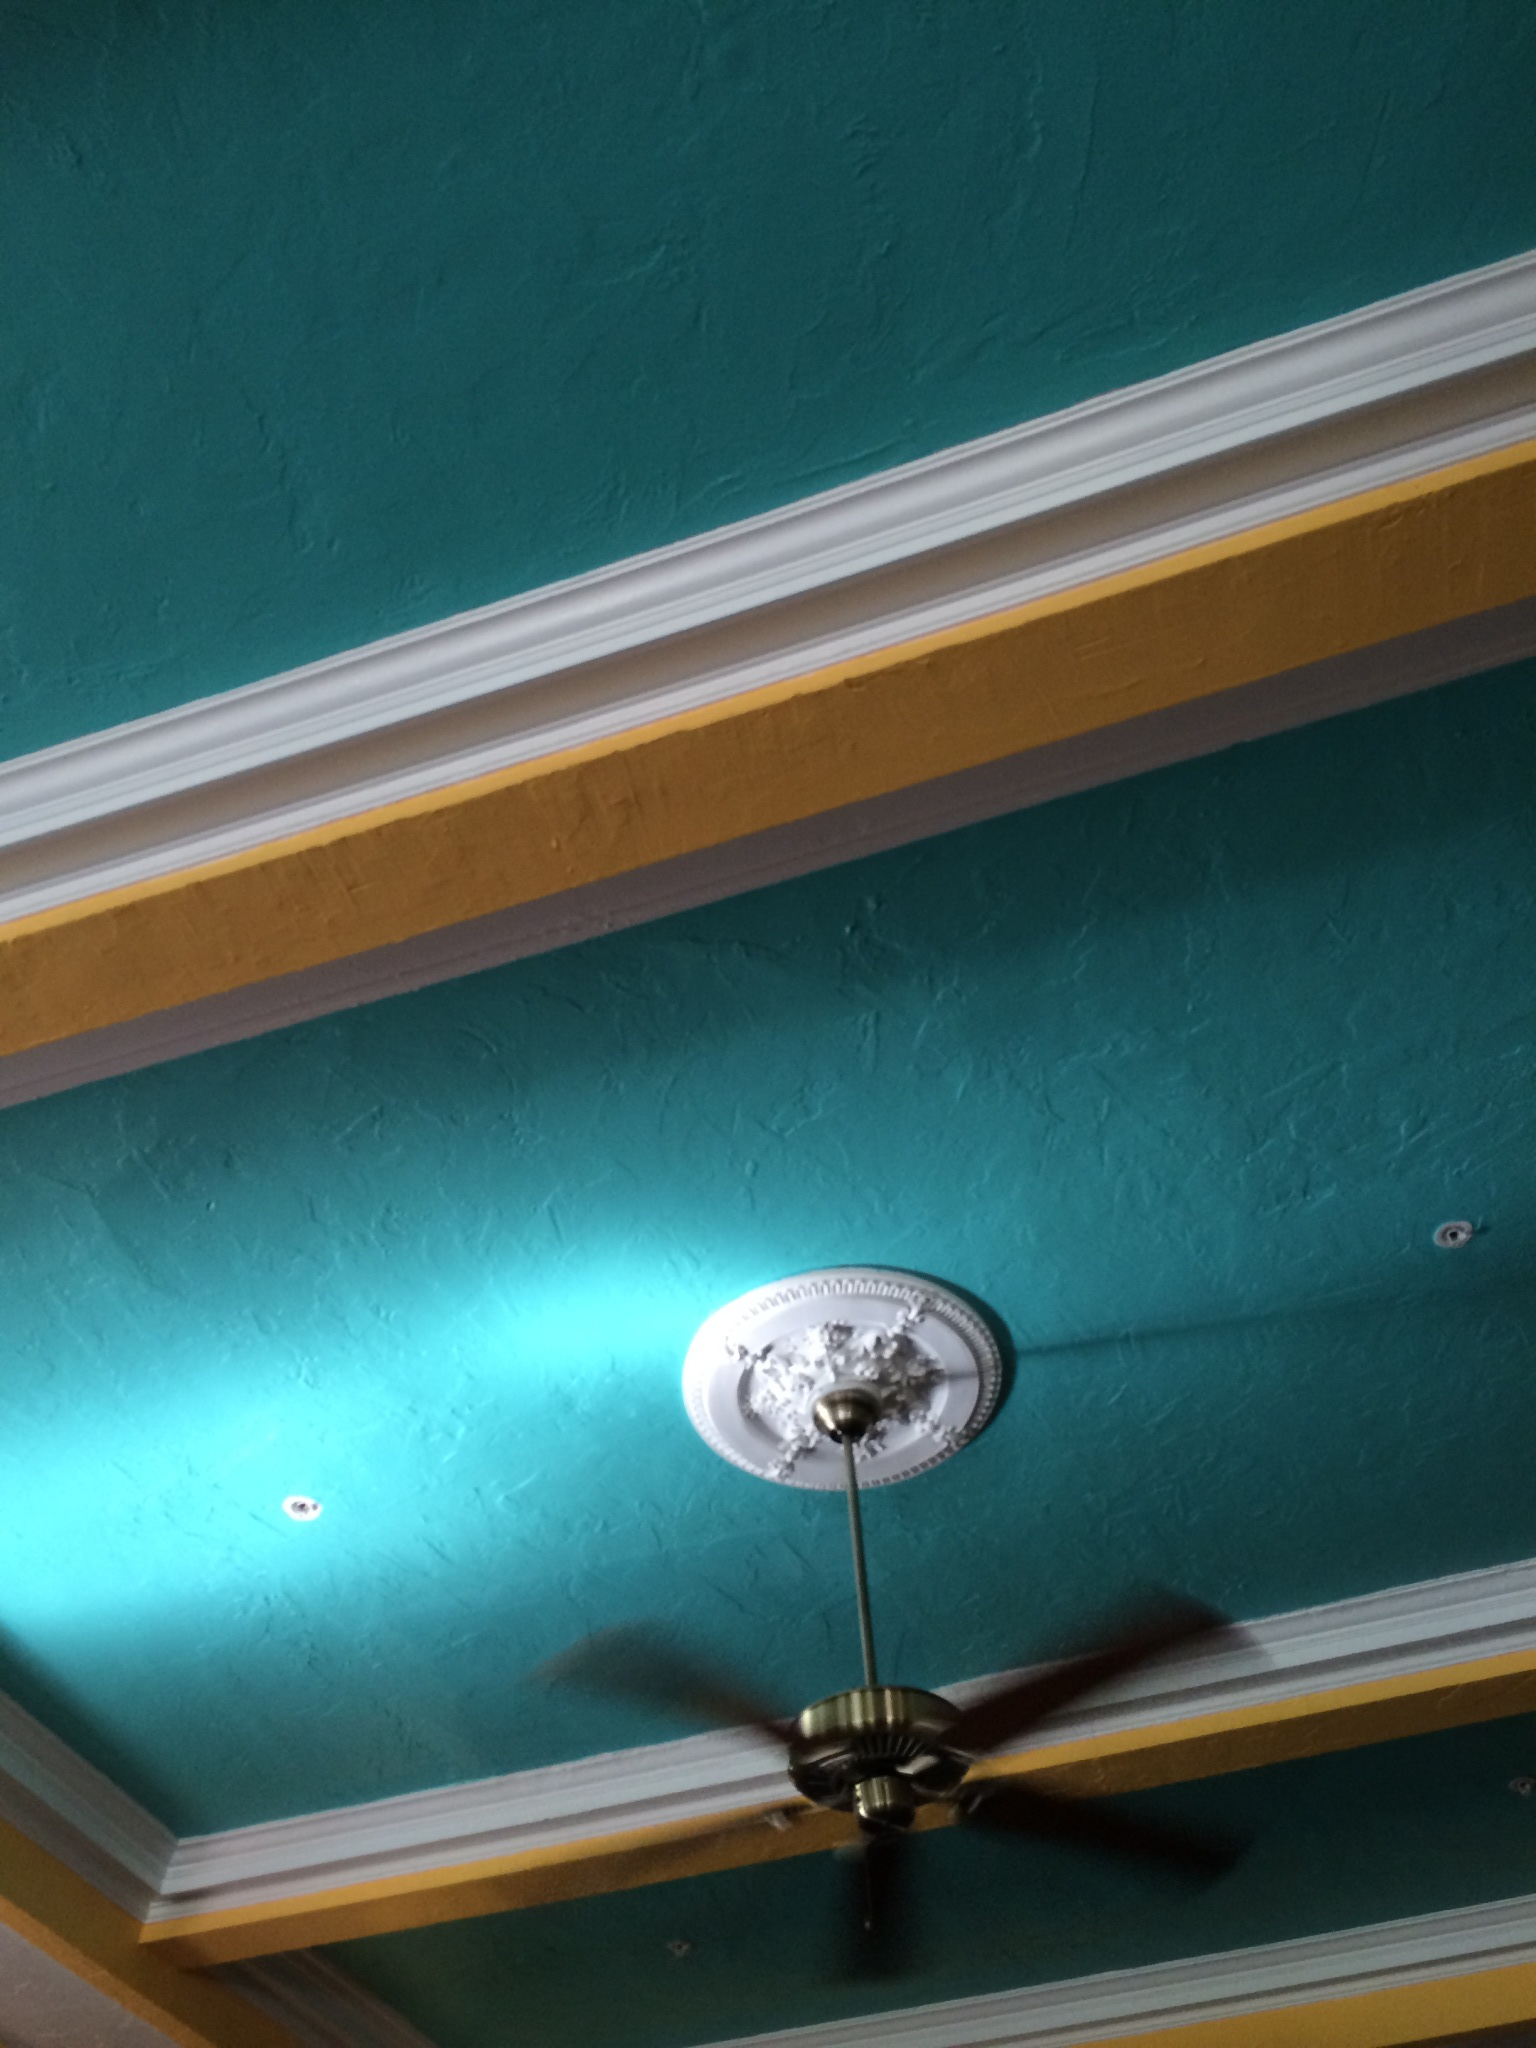 heyyy pretty teal ceiling